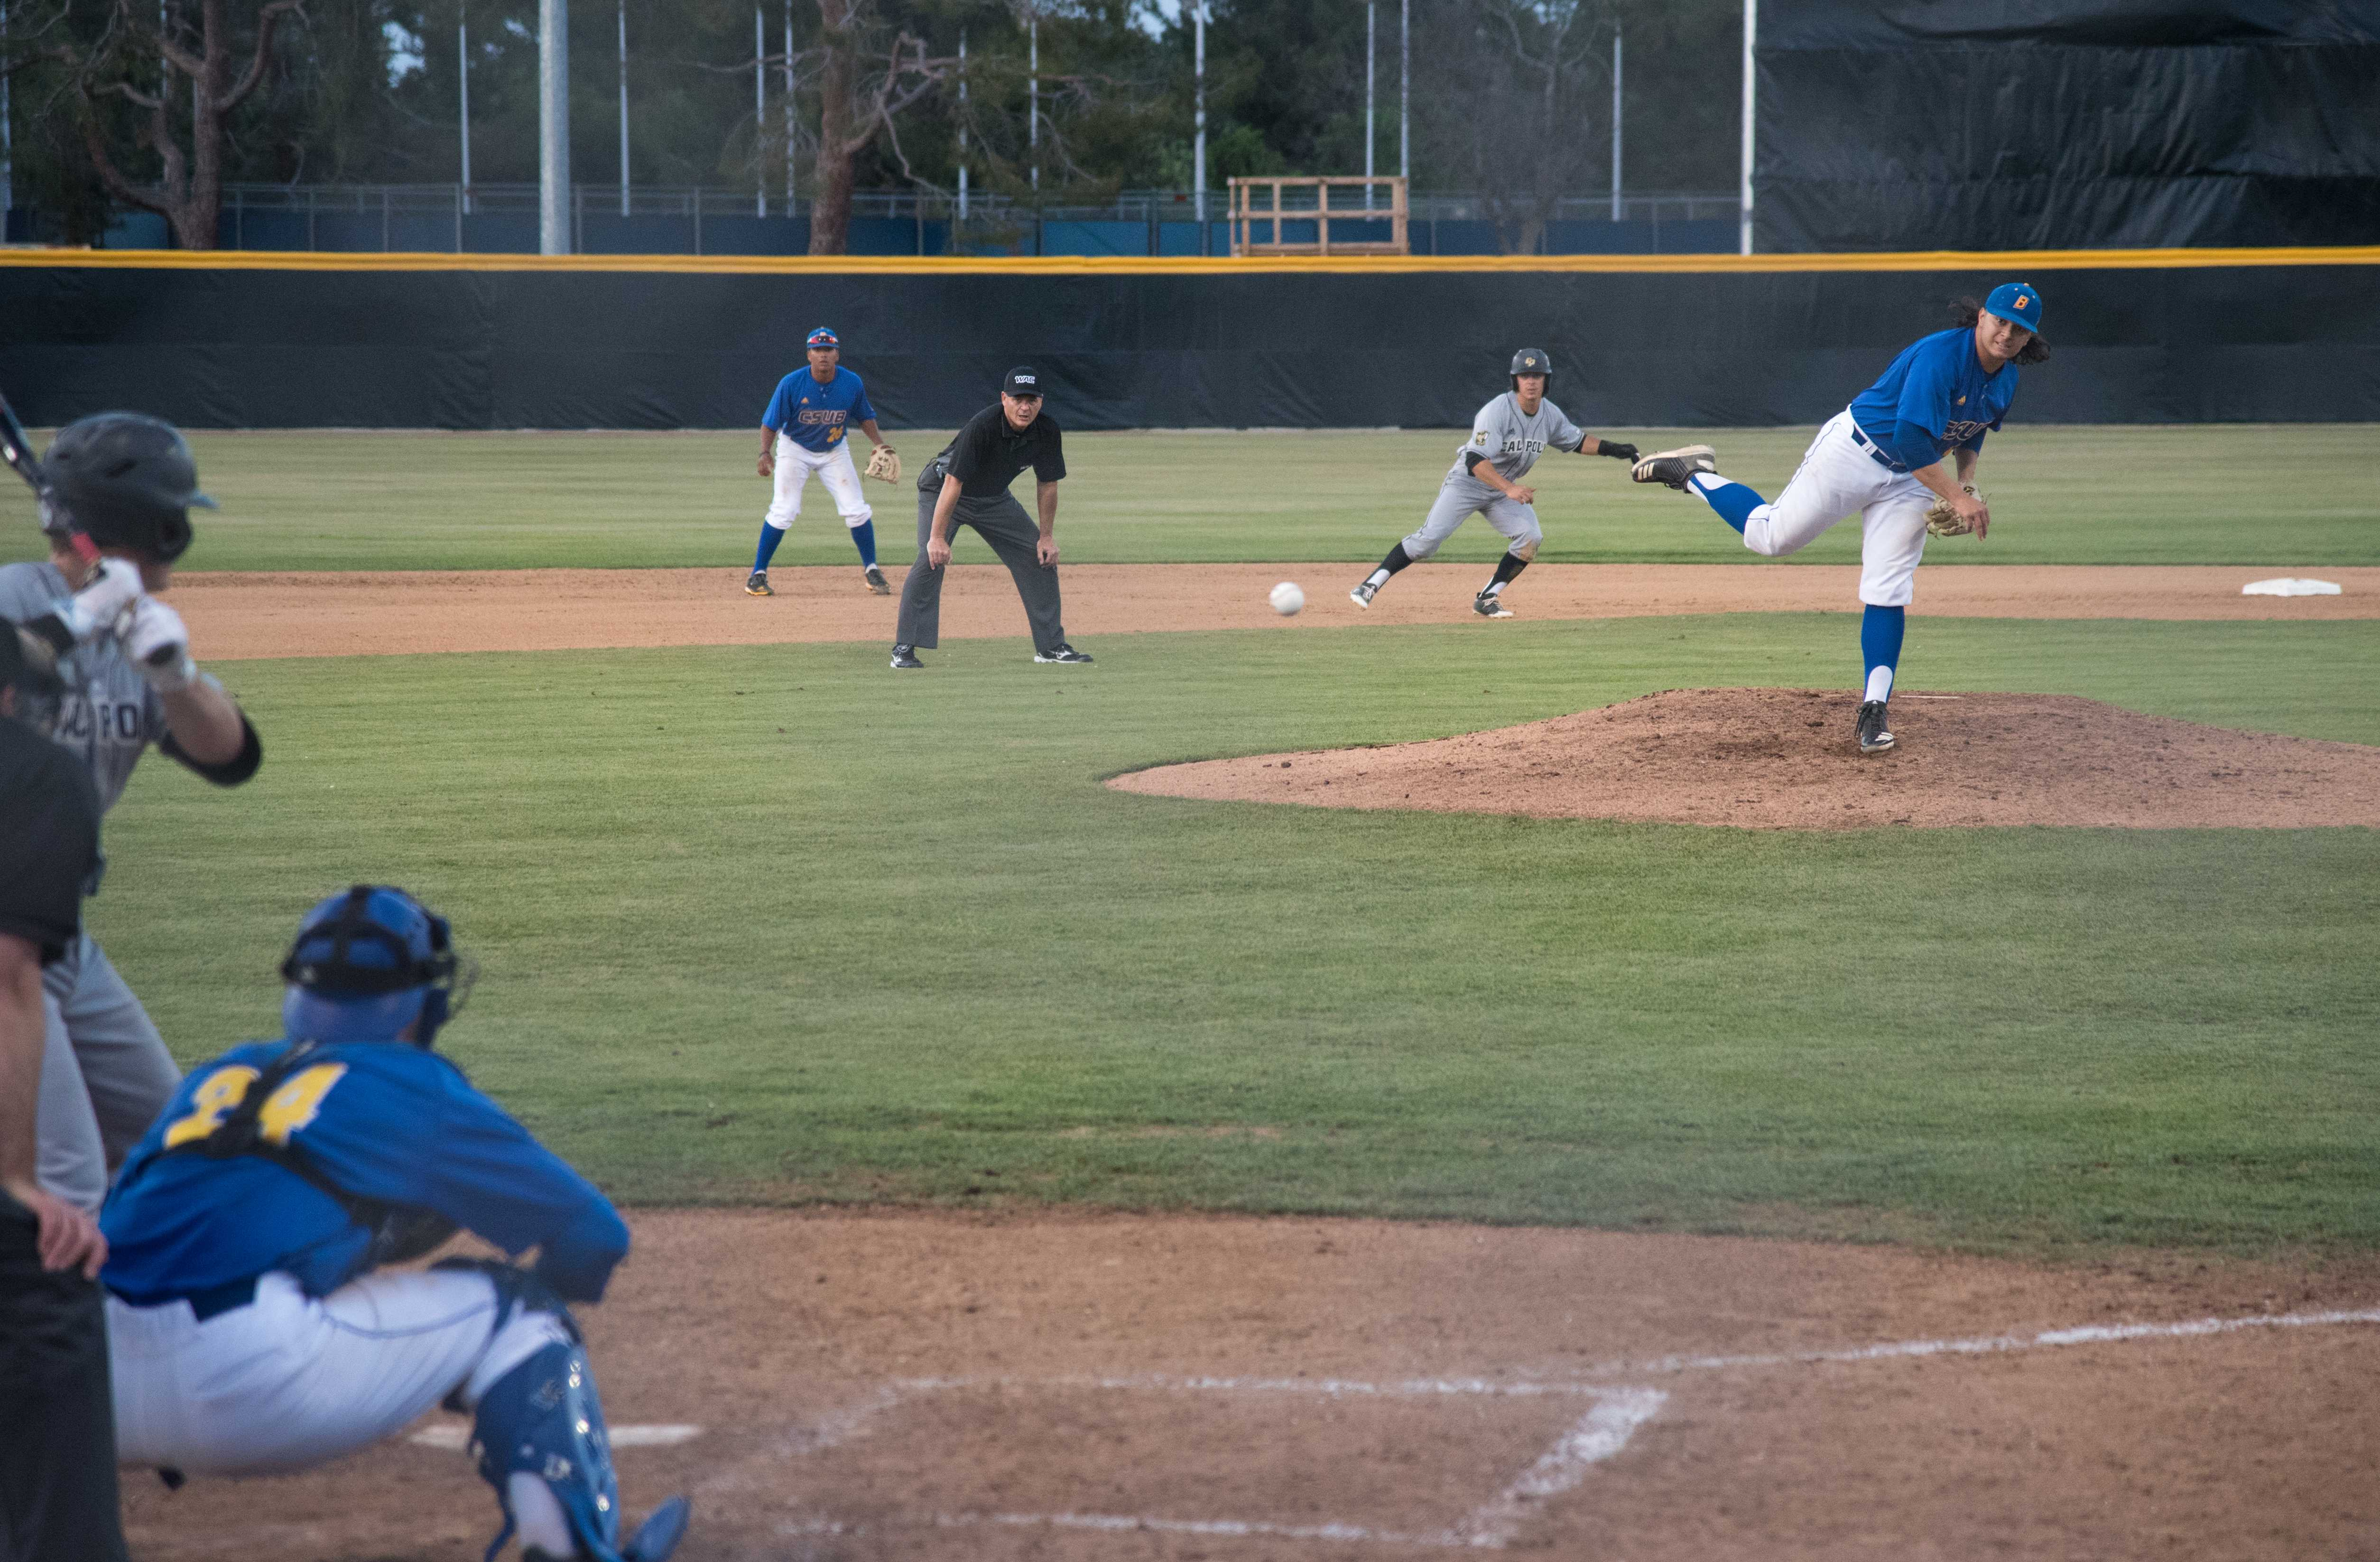 CSUB relinquishes lead, fall 11-8 to Cal Poly